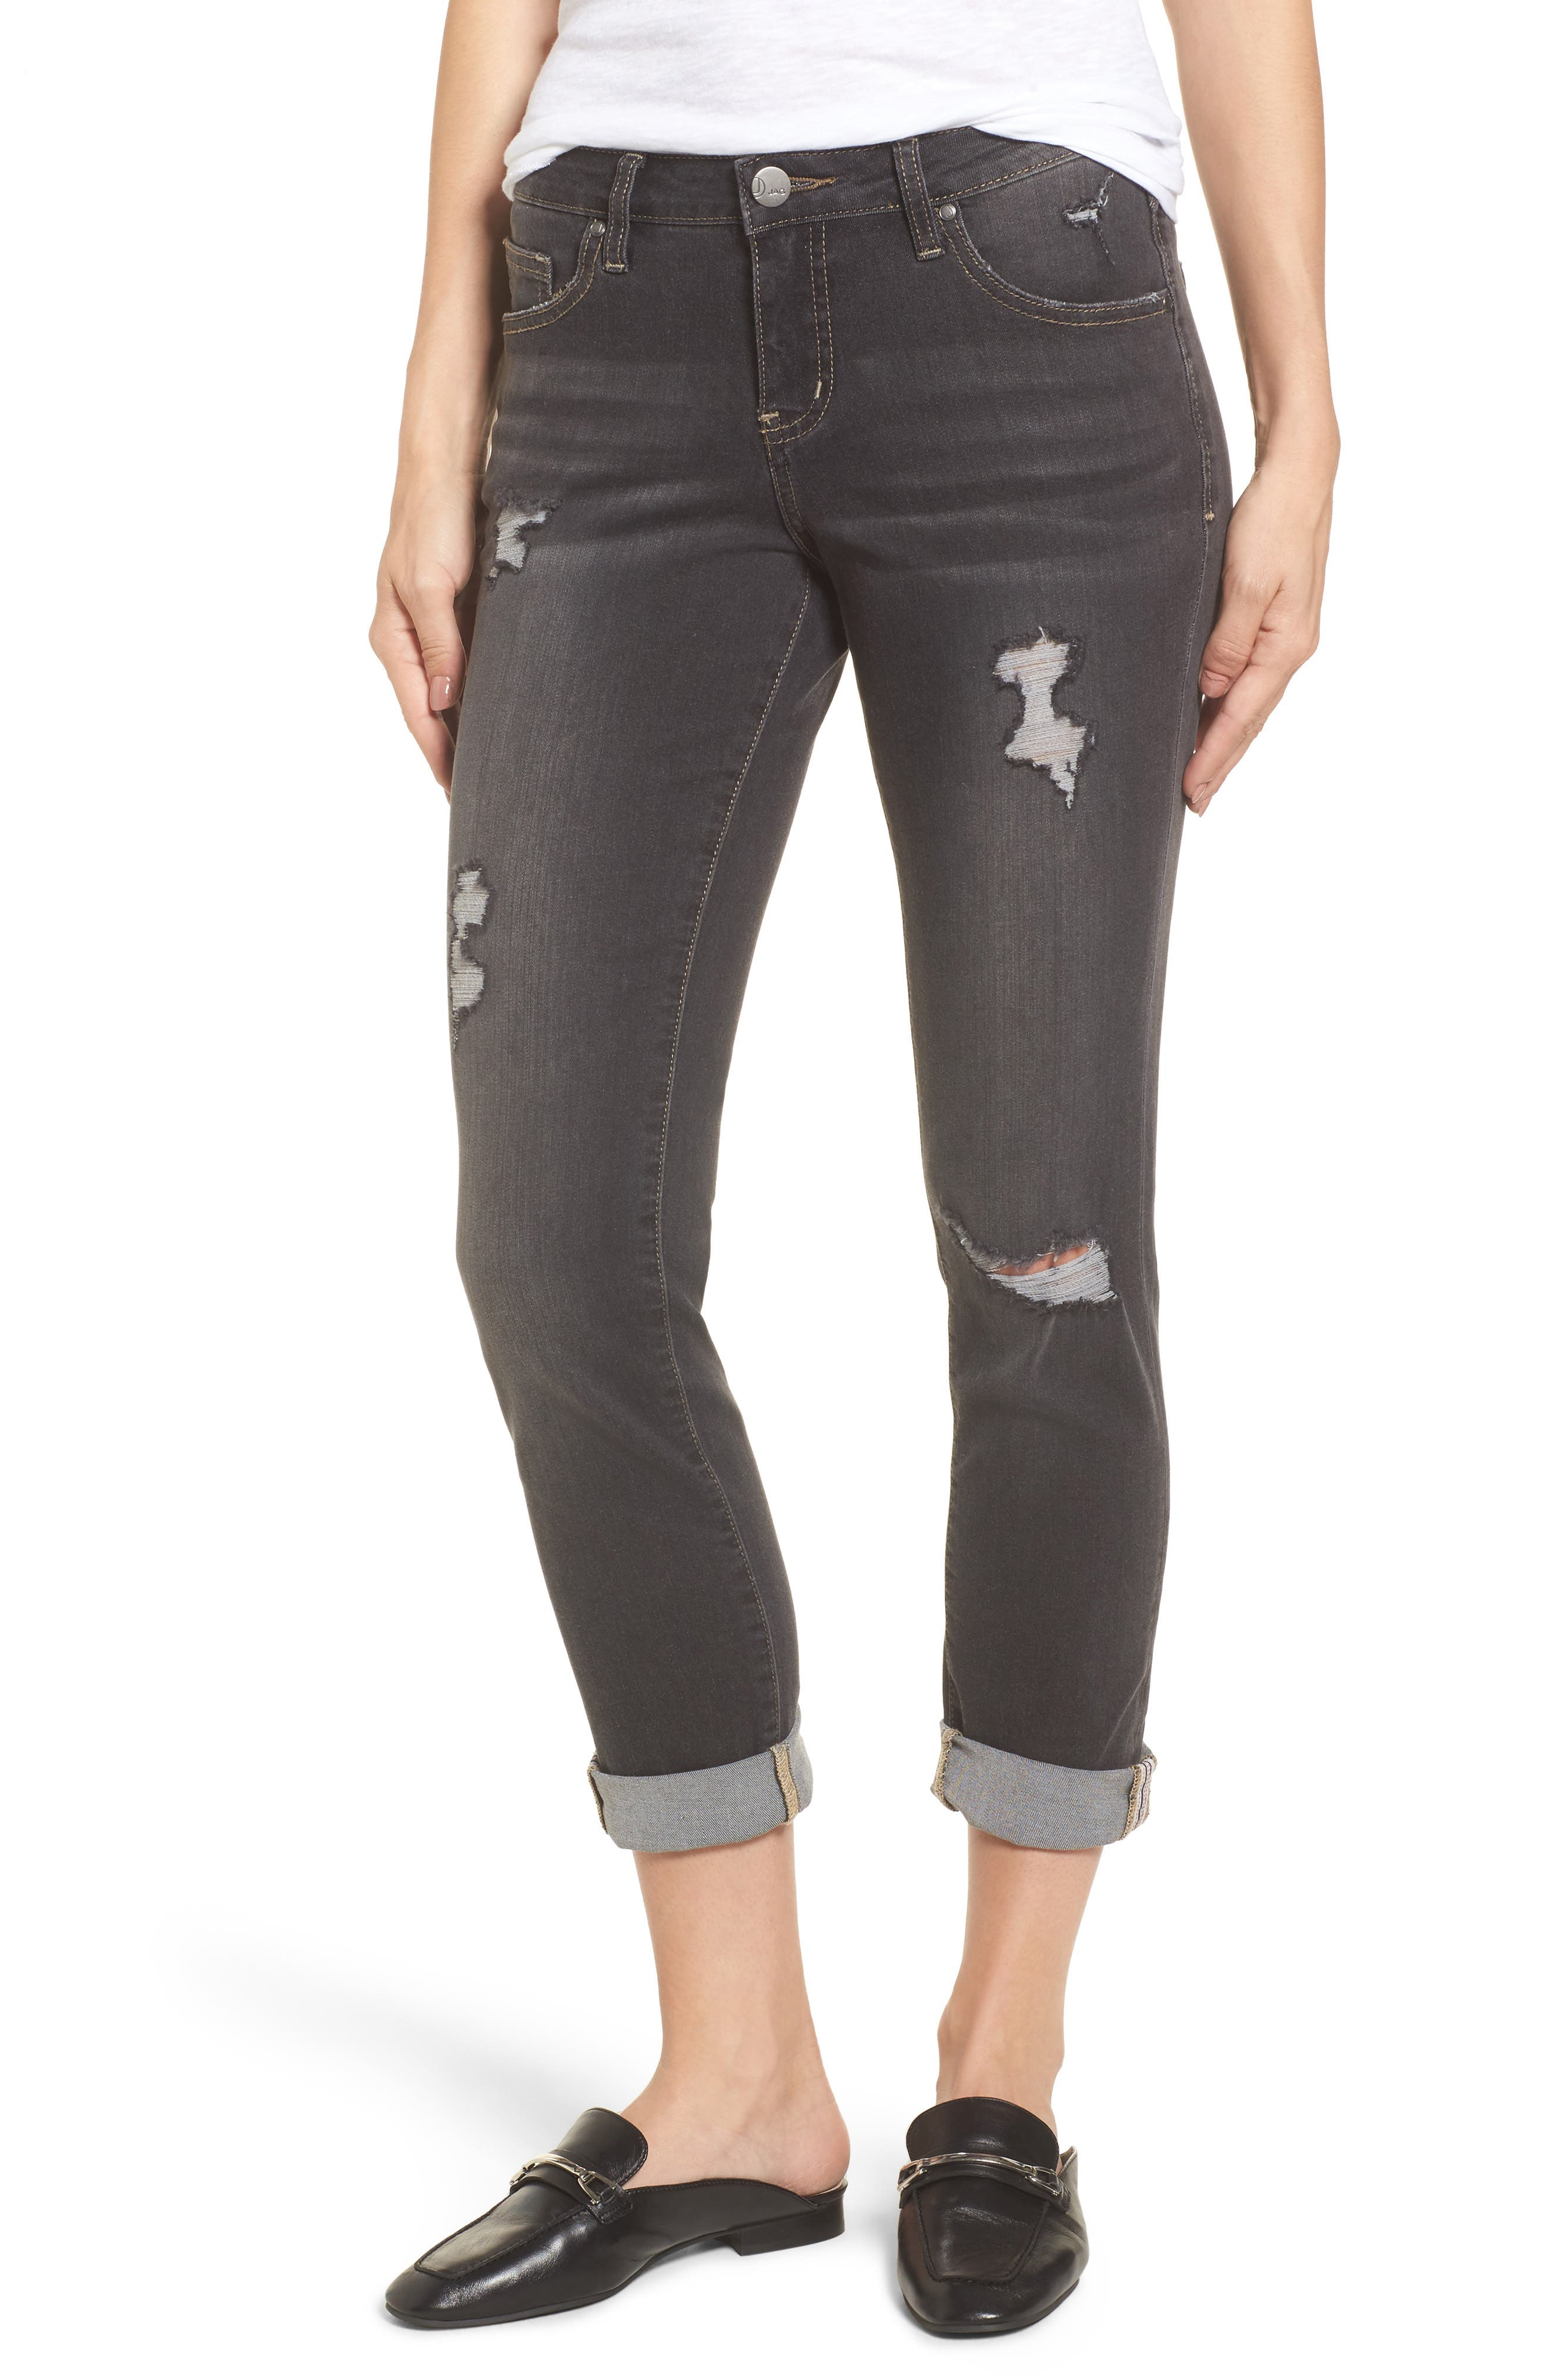 Carter Cuffed Girlfriend Jeans,                         Main,                         color, DARK GREY